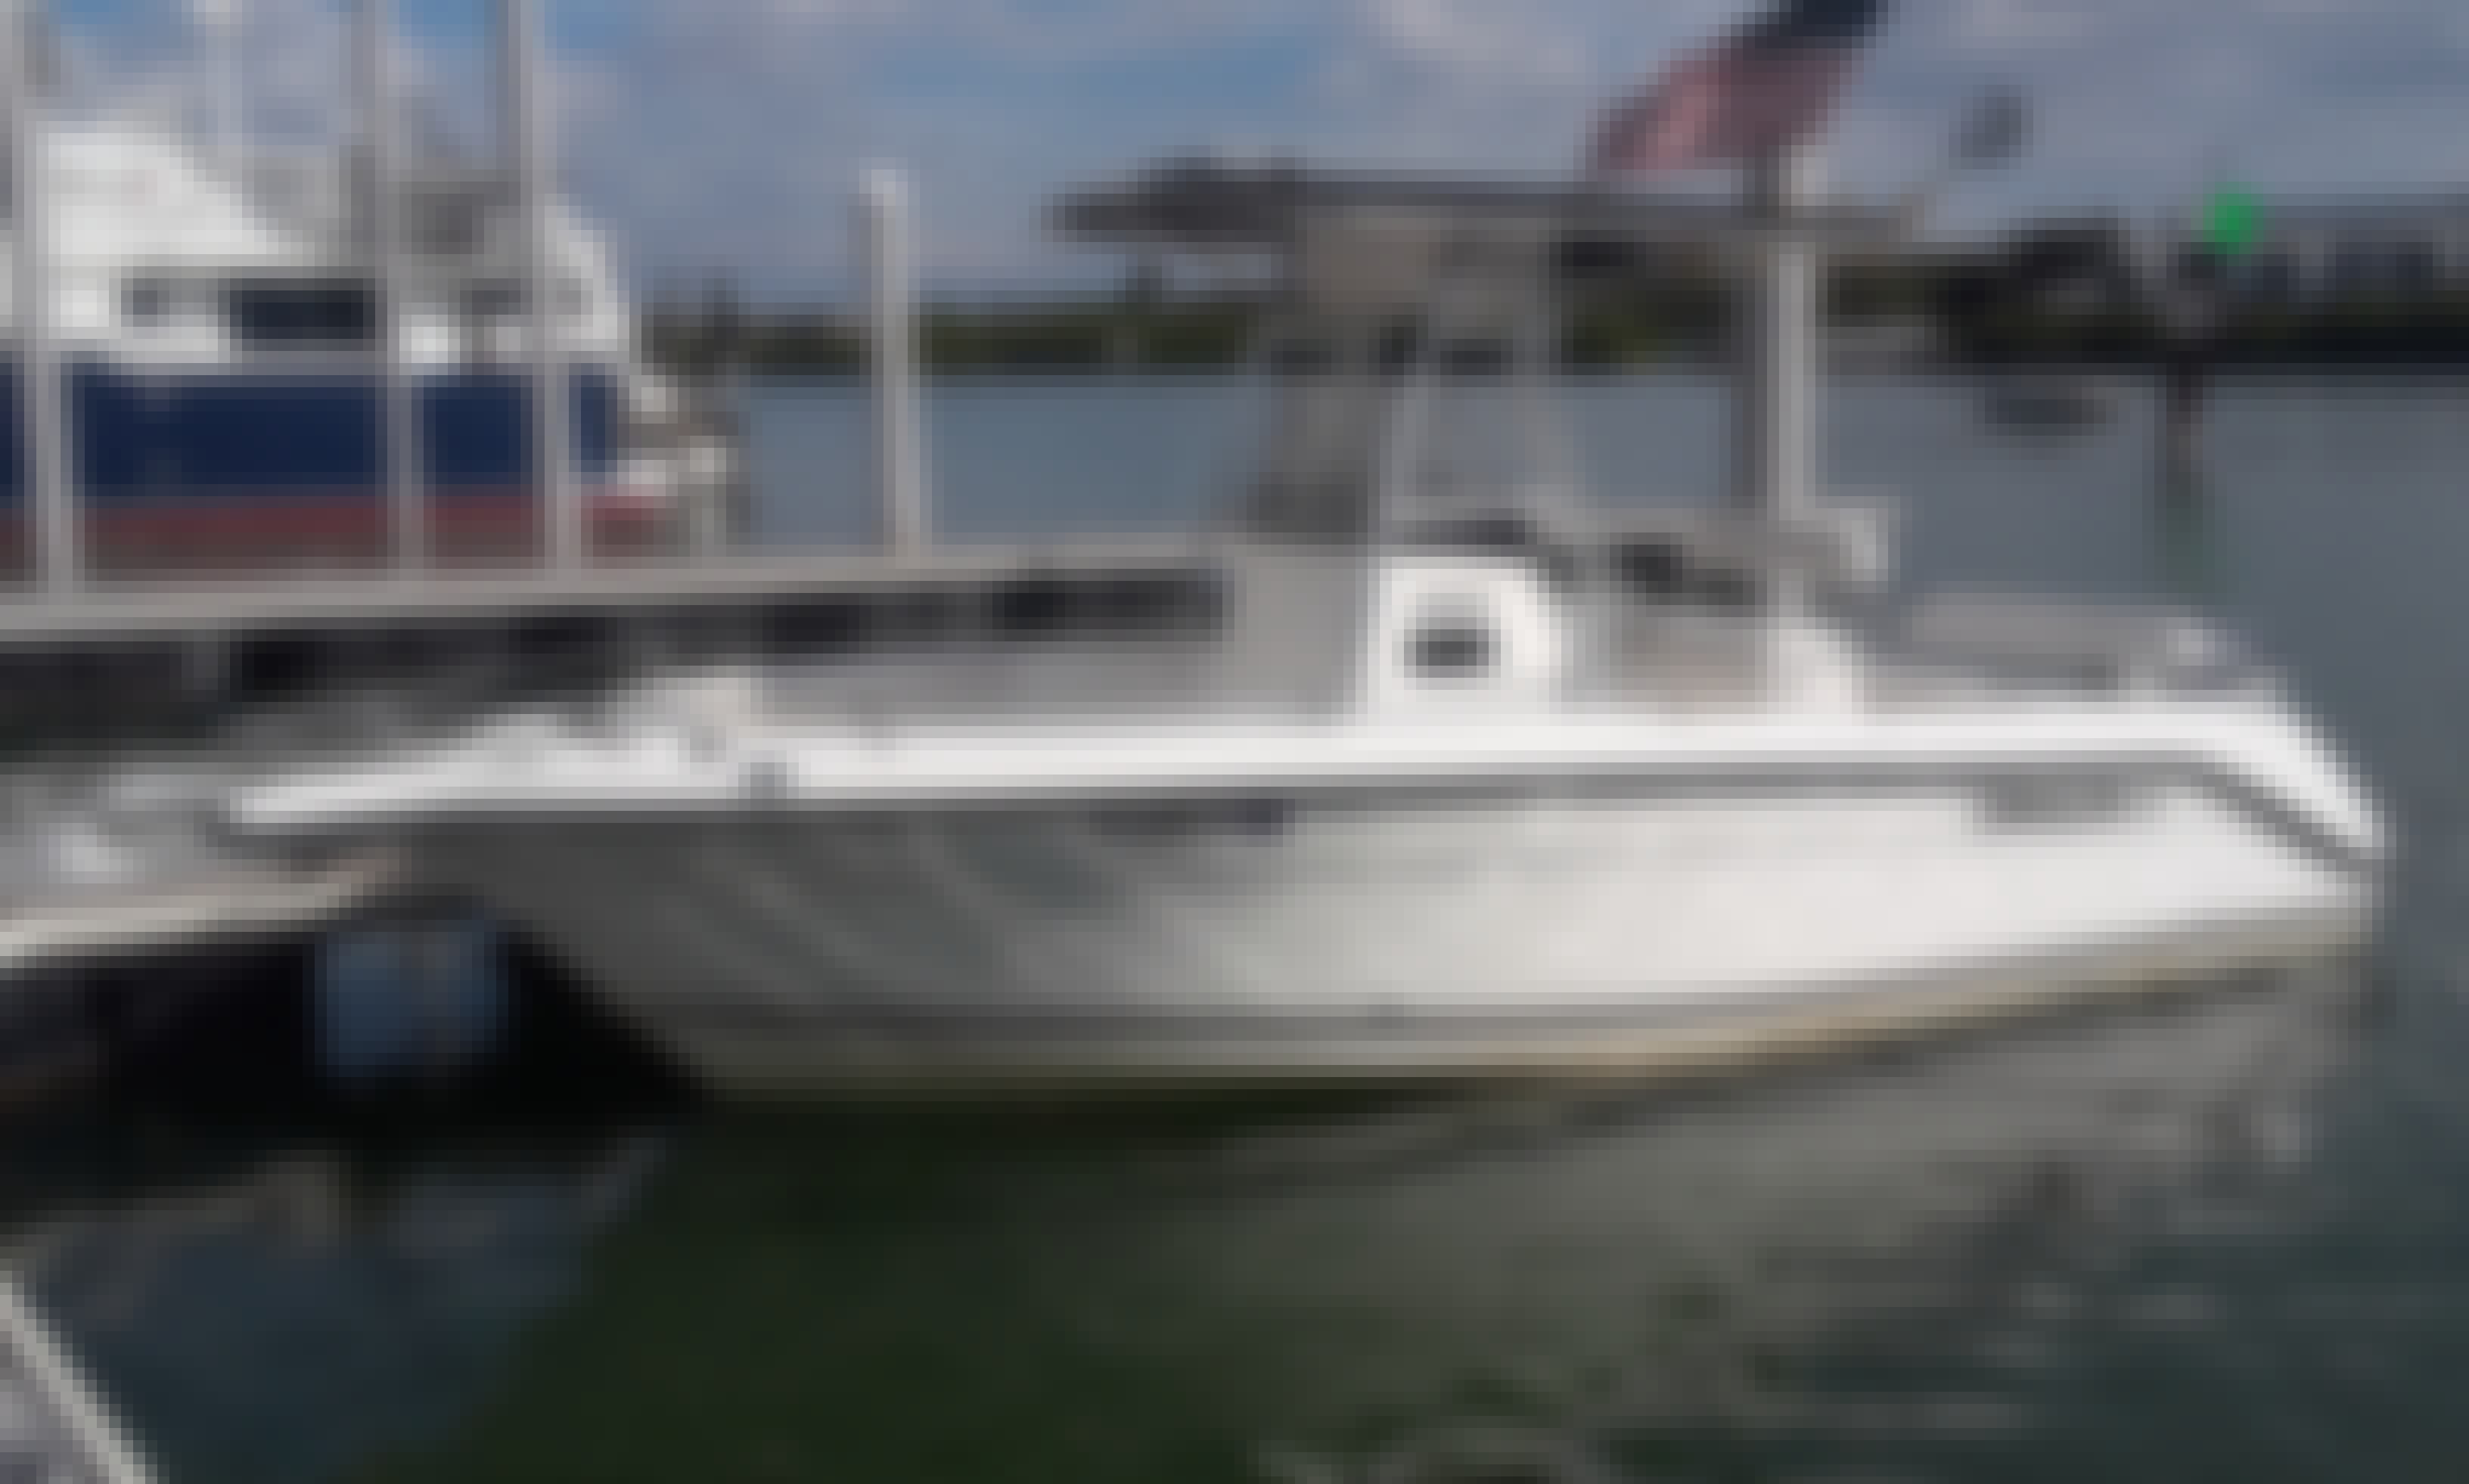 Century 22' Center Console - Clearwater Beach FL - Scenic cruises, dolphin tours, sunsets, fishing and more!